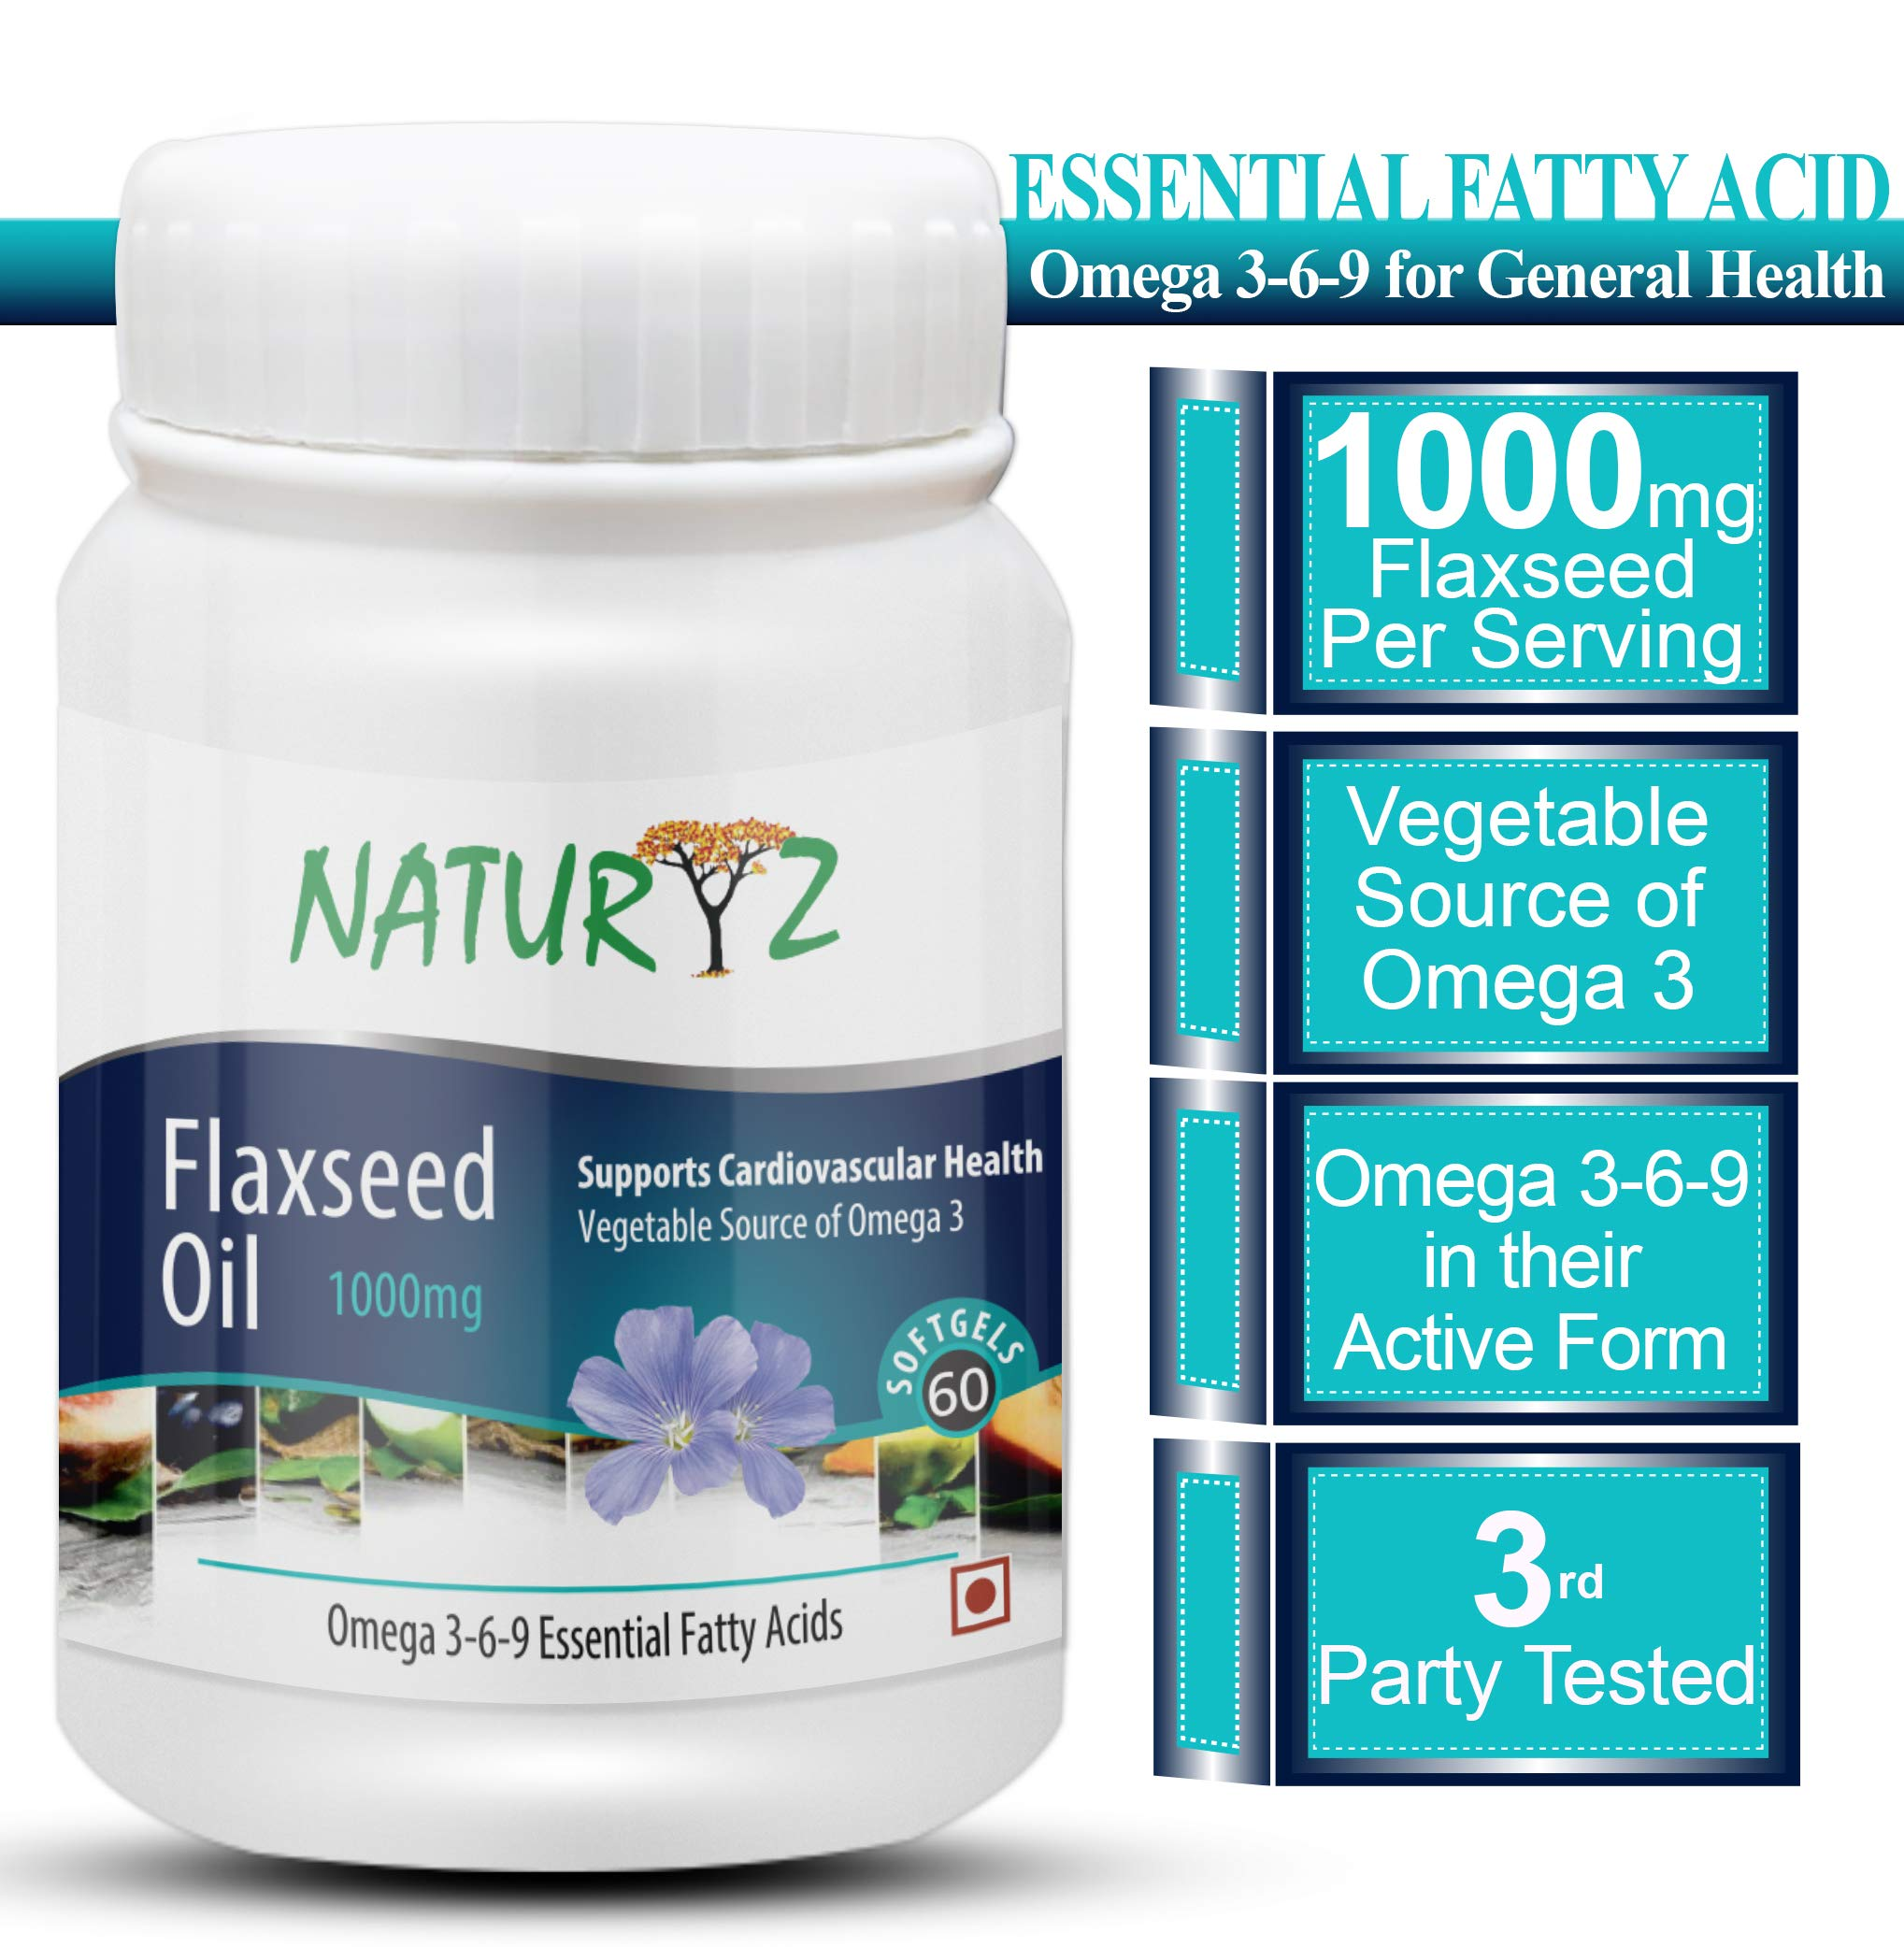 Naturyz Cold Pressed Flaxseed Oil (Omega 3-6-9) 1000 mg -60 Softgel Capsules product image